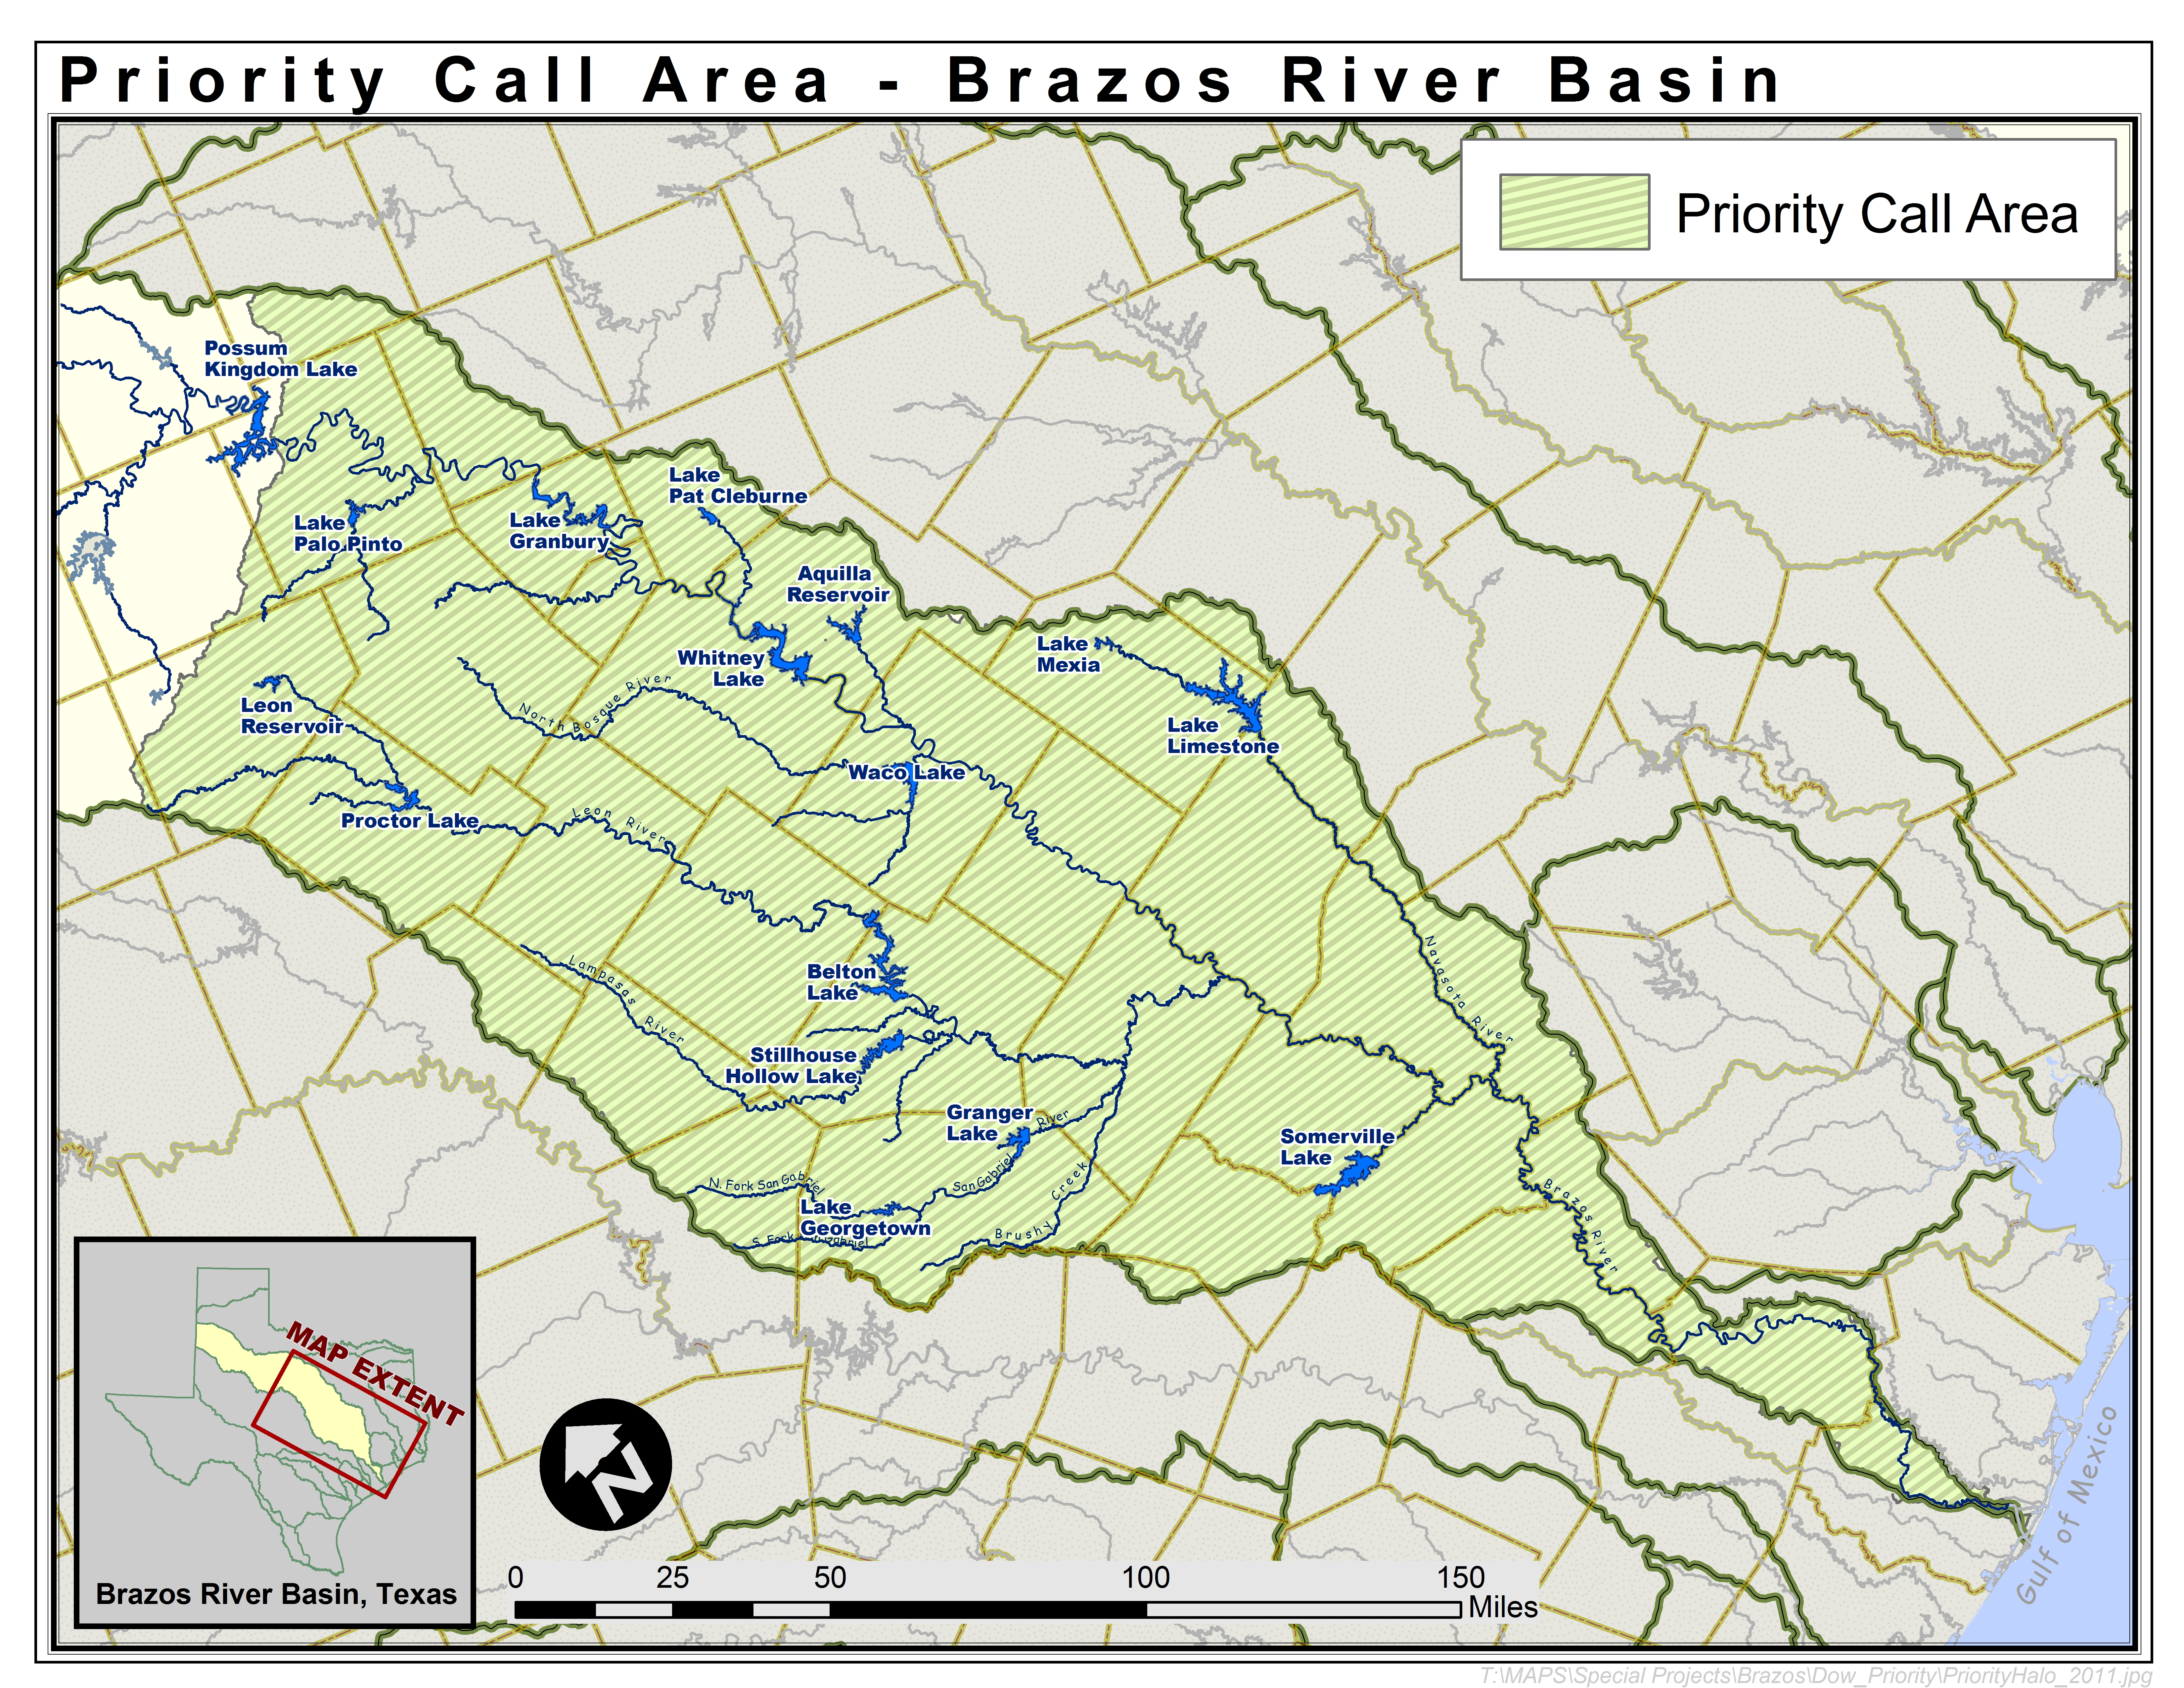 Map of the Brazos River Priority Call Area